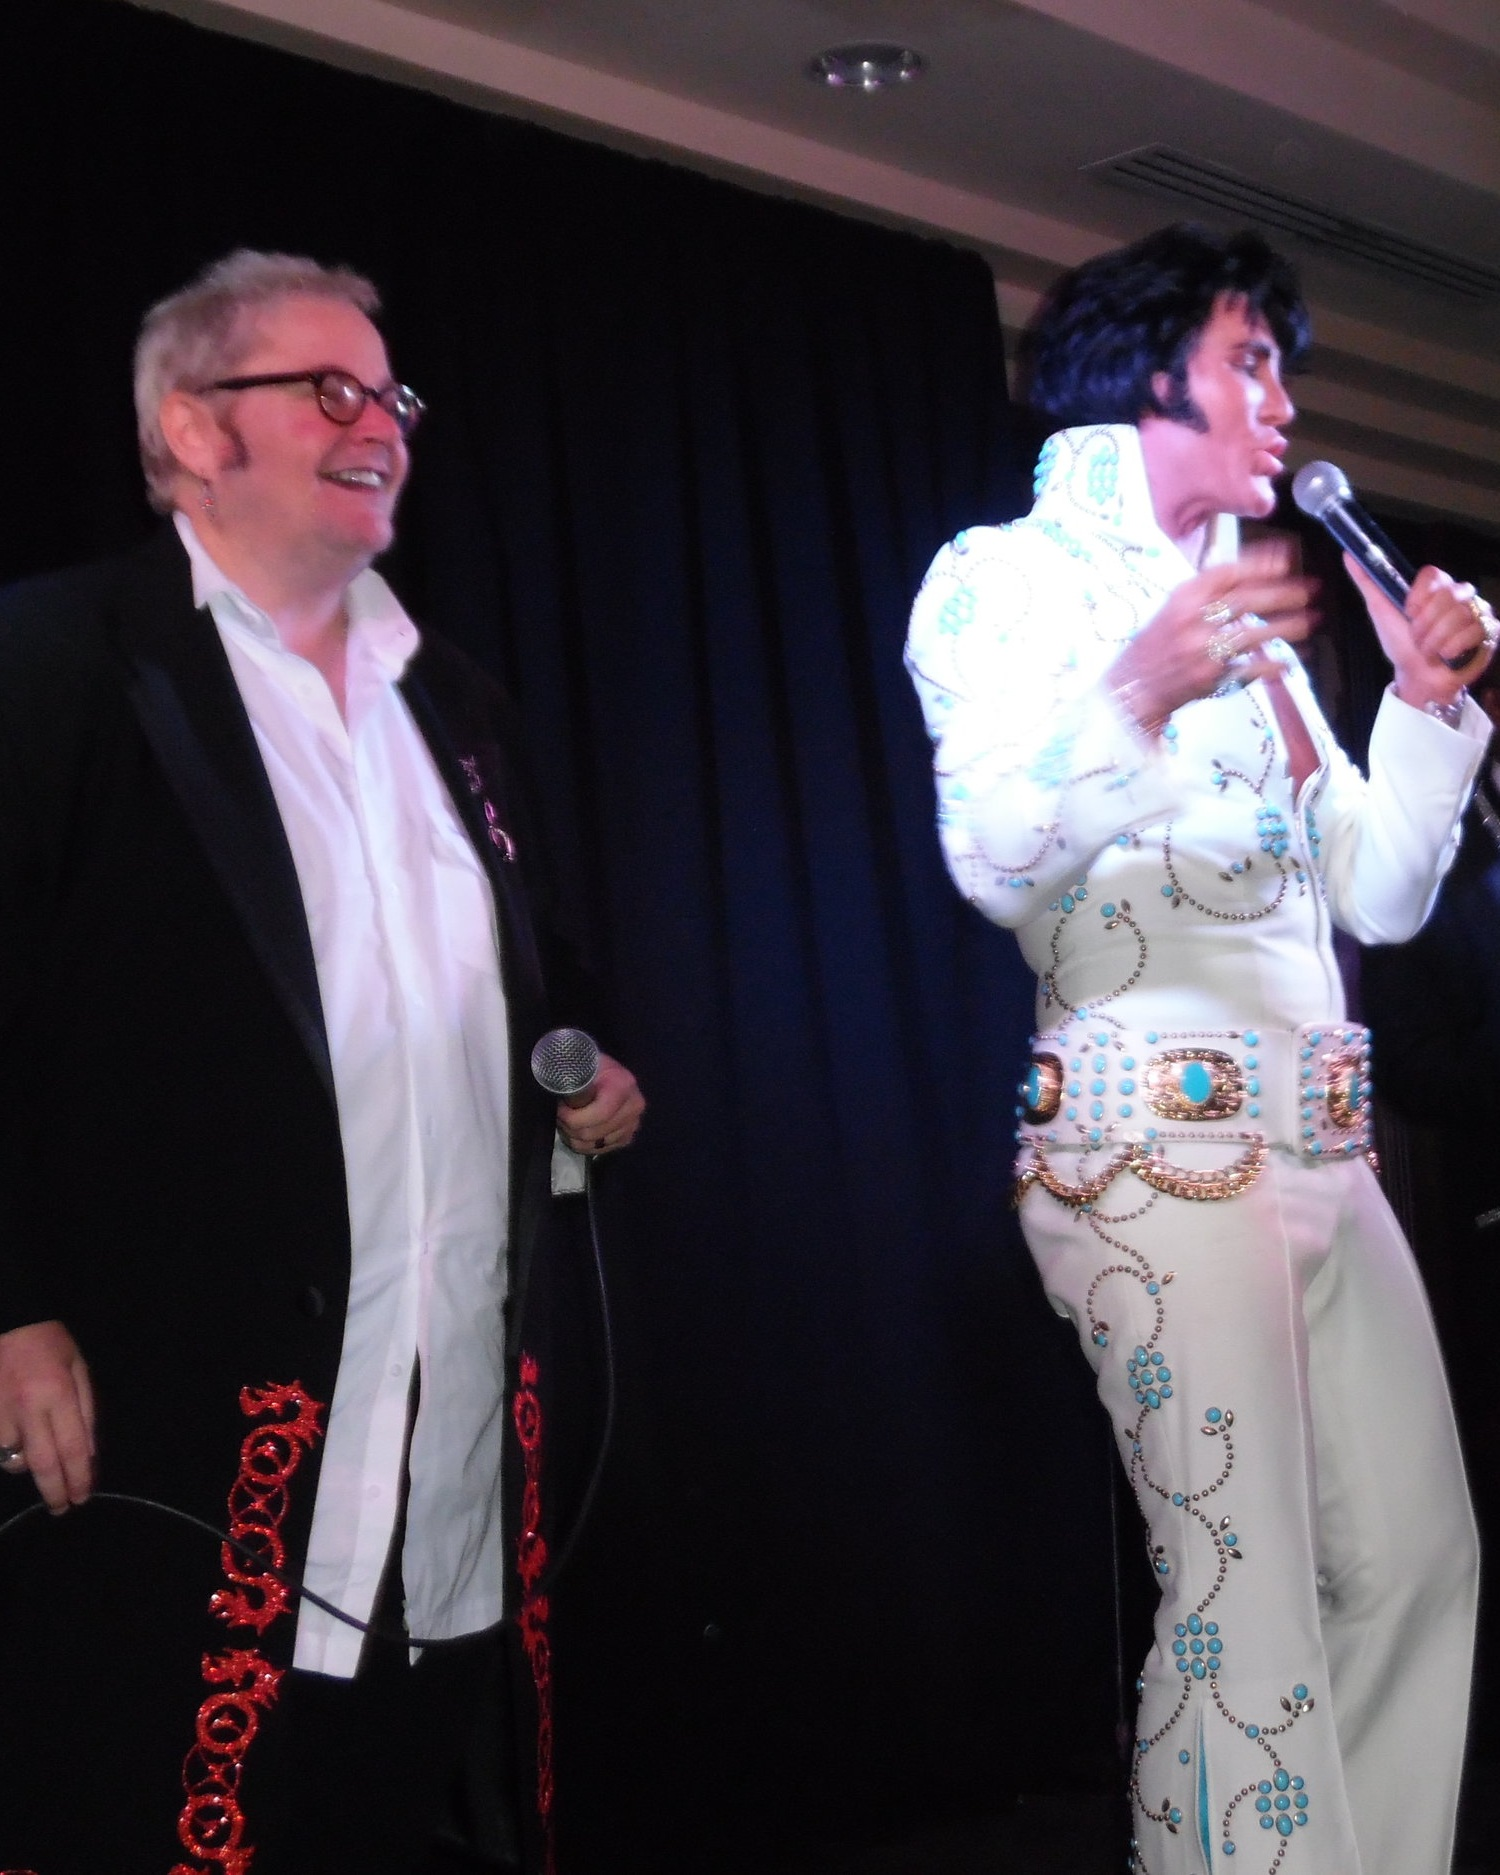 Marcus Wells and Gordon Hendricks will reprise their tributes to Sir Elton John and Elvis Presley at the Grimsby show. Also appearing at the Casablanca will be Tiffany Deriveau as Tina Turner.  Photo Credit: C. MacArthur.